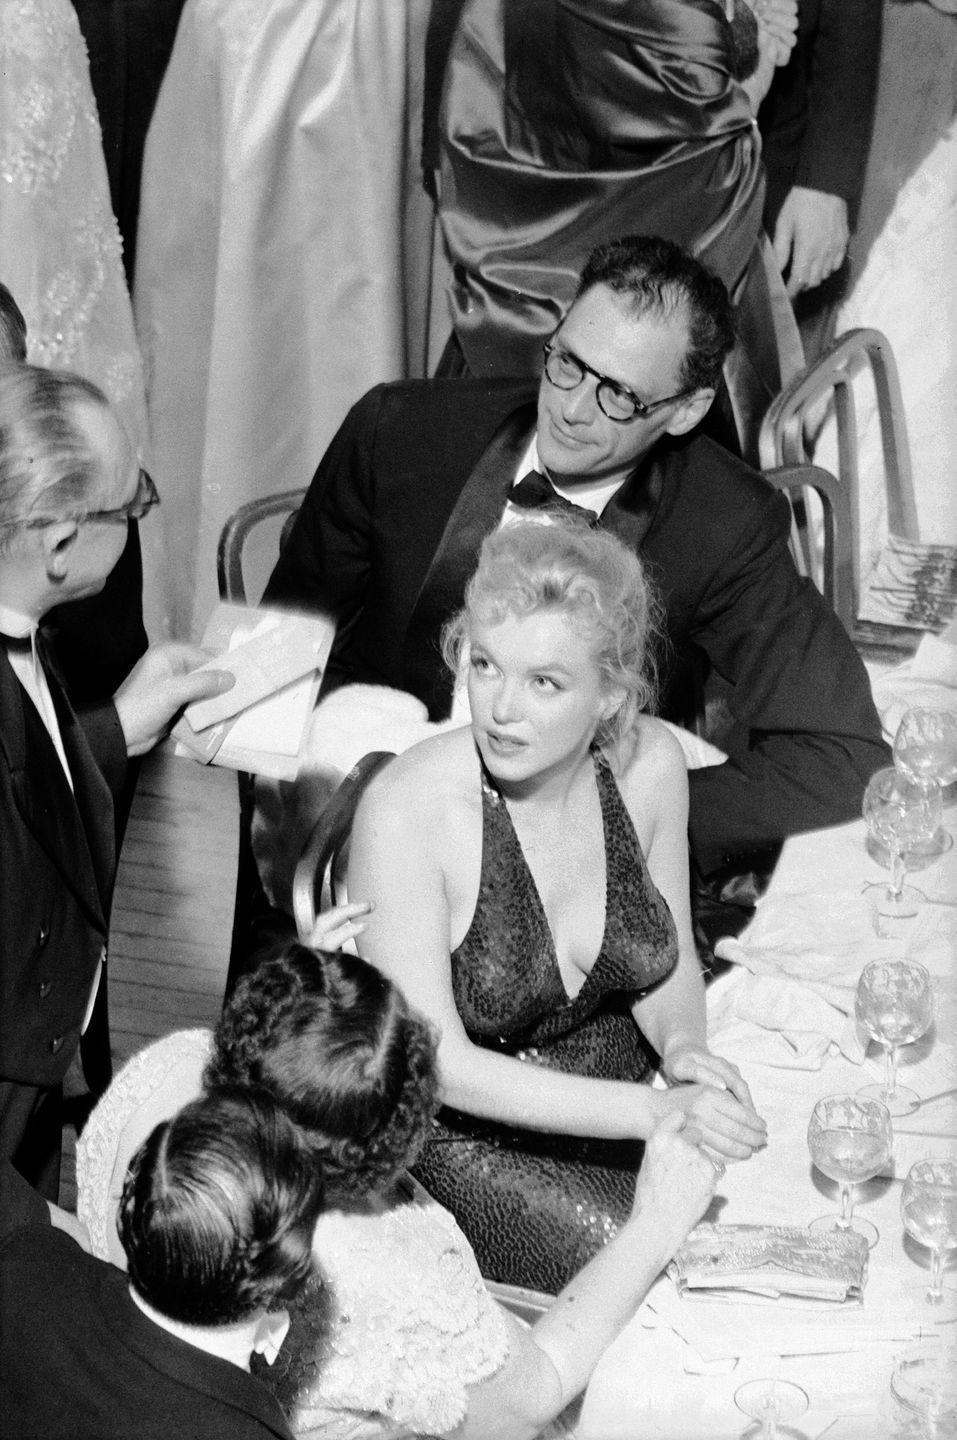 <p>Marilyn Monroe and her third husband, Arthur Miller, were spotted at the infamous April in Paris Ball in New York City. The event was a sophisticated social calendar staple, held at the Waldorf Astoria, and was attended by socialites such as Lee Radziwill. </p>